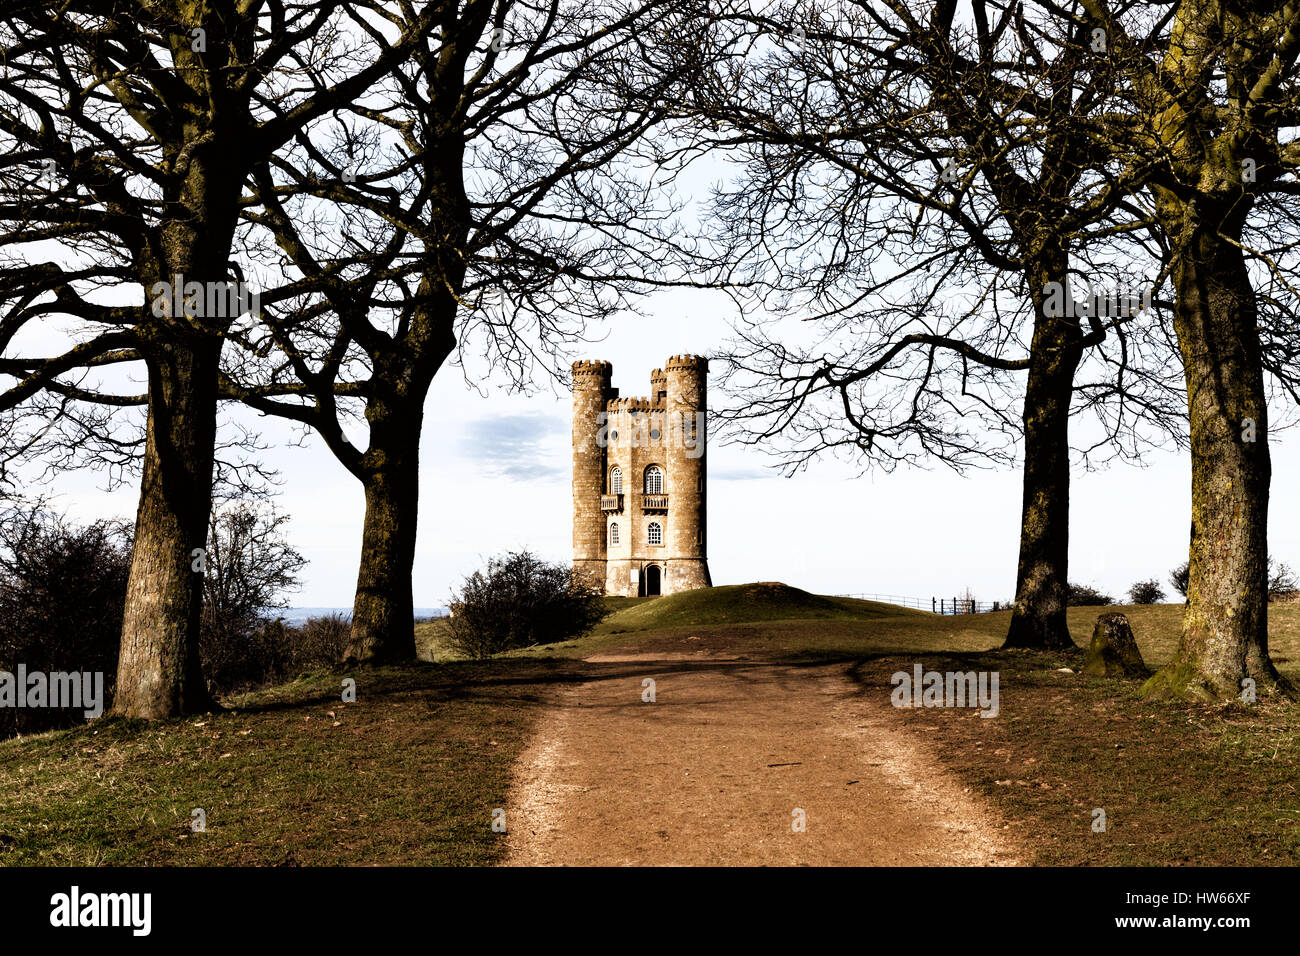 broadway-tower-an-18th-century-folly-on-